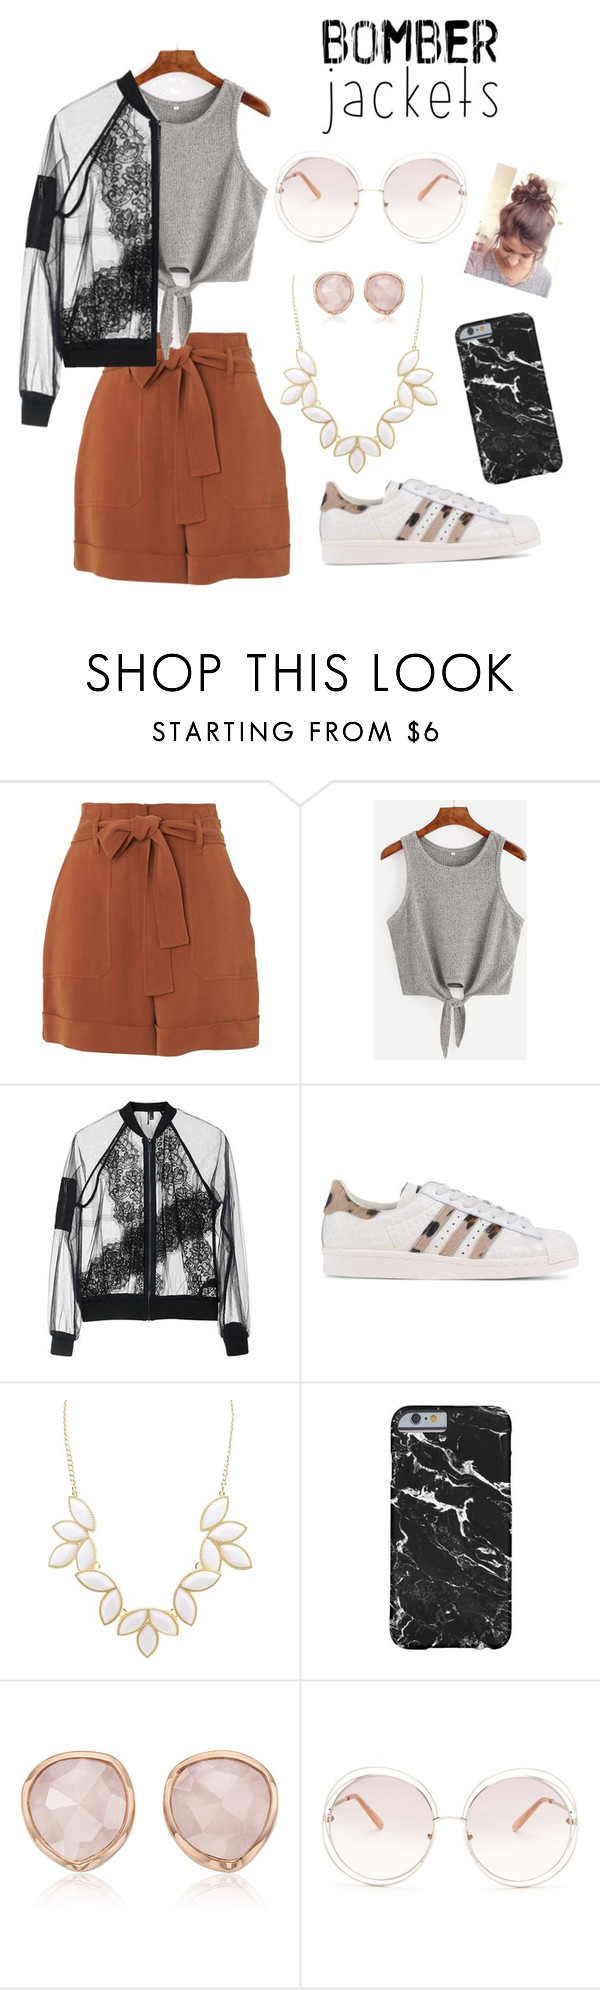 """Bomb the the comfort"" by kimezo ❤ liked on Polyvore featuring Whistles, Topshop, adidas Originals, Charlotte Russe, Monica Vinader, Chloé and bomberjackets"